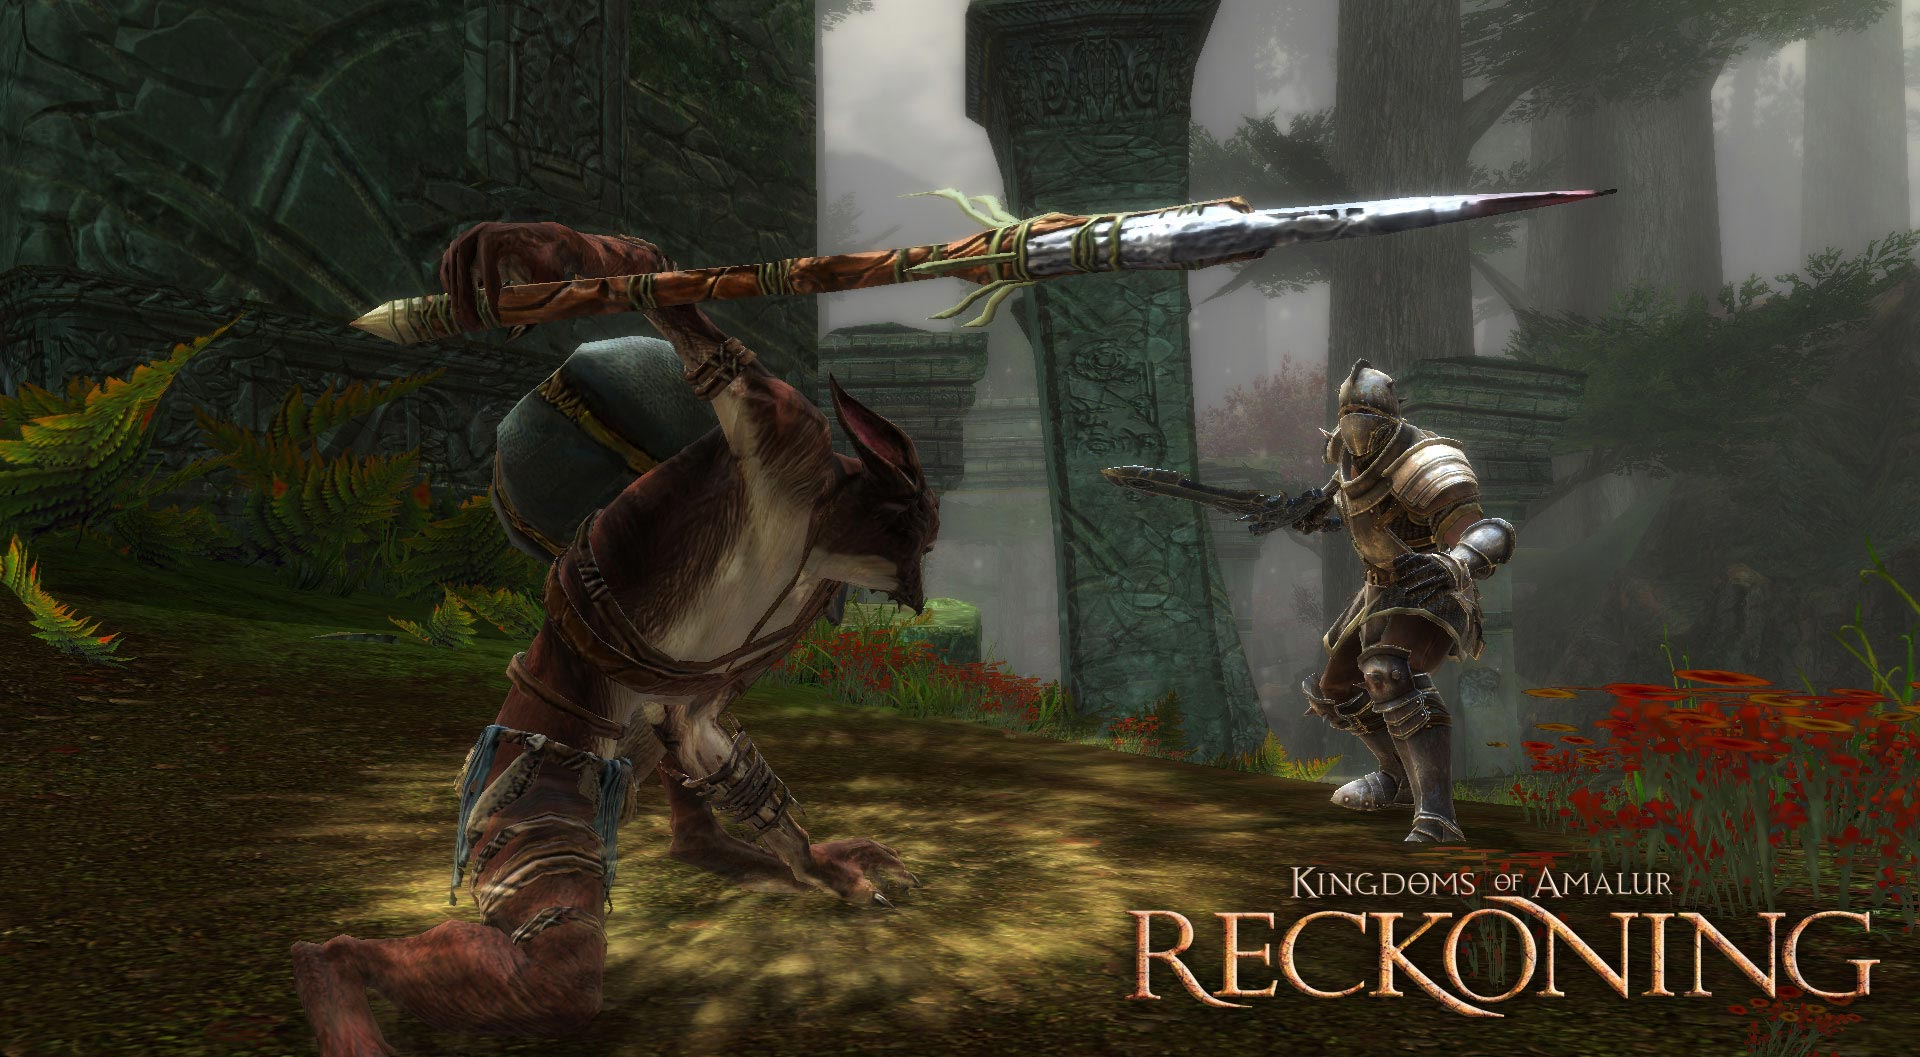 Kingdoms-of-Amalur-Reckoning_00.jpg